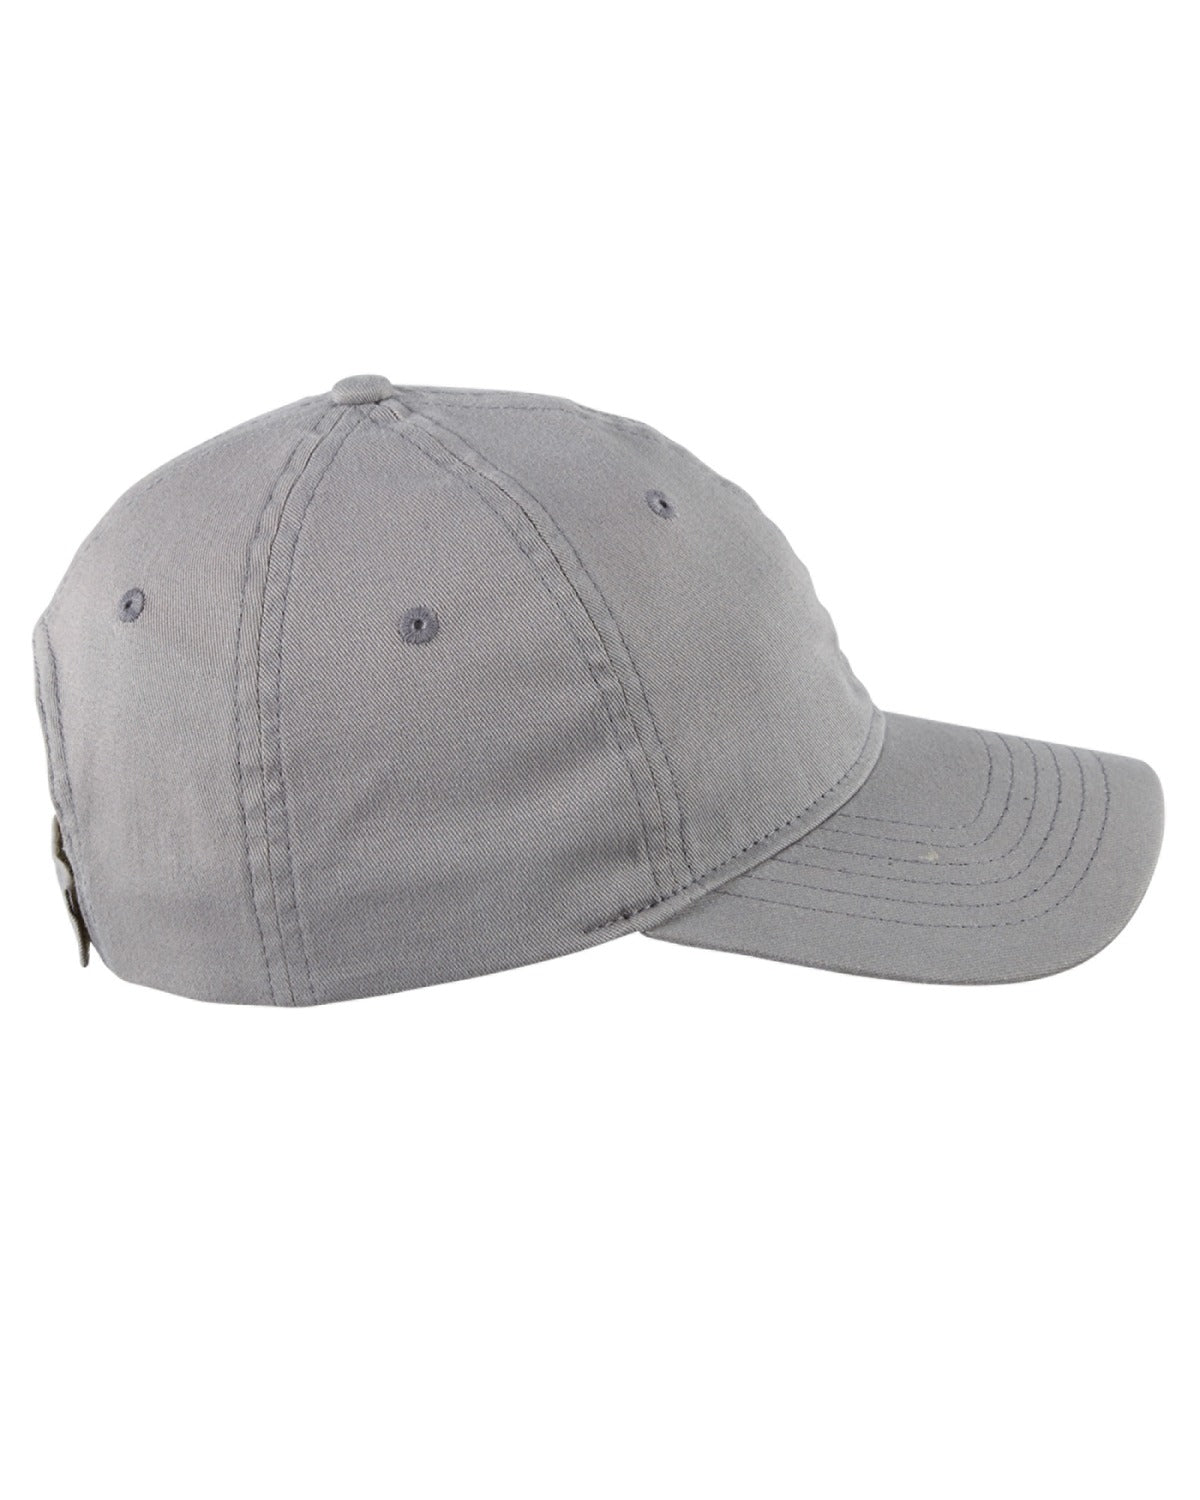 Basic Unstructured Hat (6-Panel Twill Cap Velcro closure) BX880